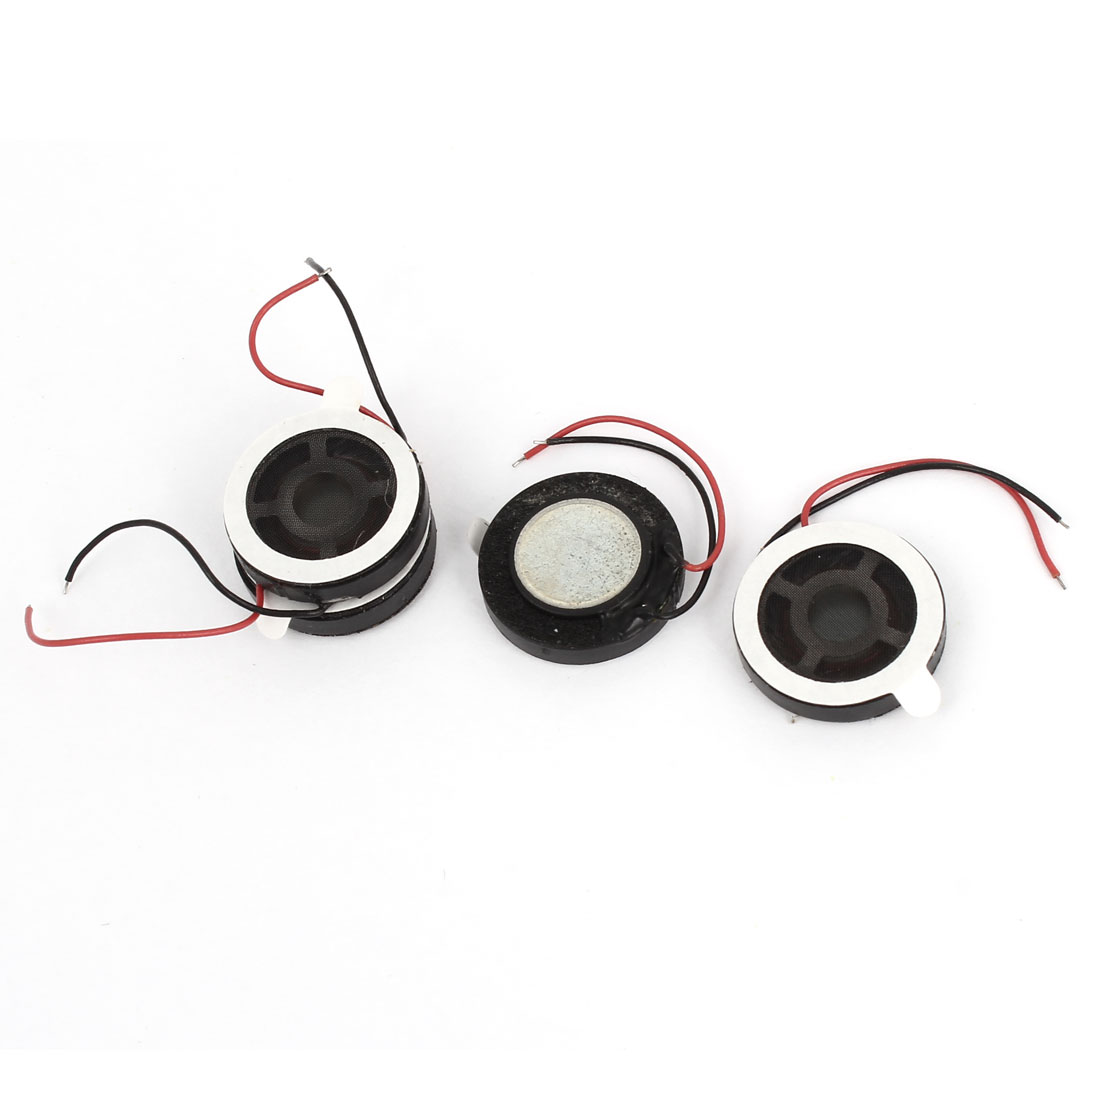 4 Pcs 0.5W 8 Ohm 15mm Dia Plastic Housing Round Cellphone Magnet Speaker Loudspeaker